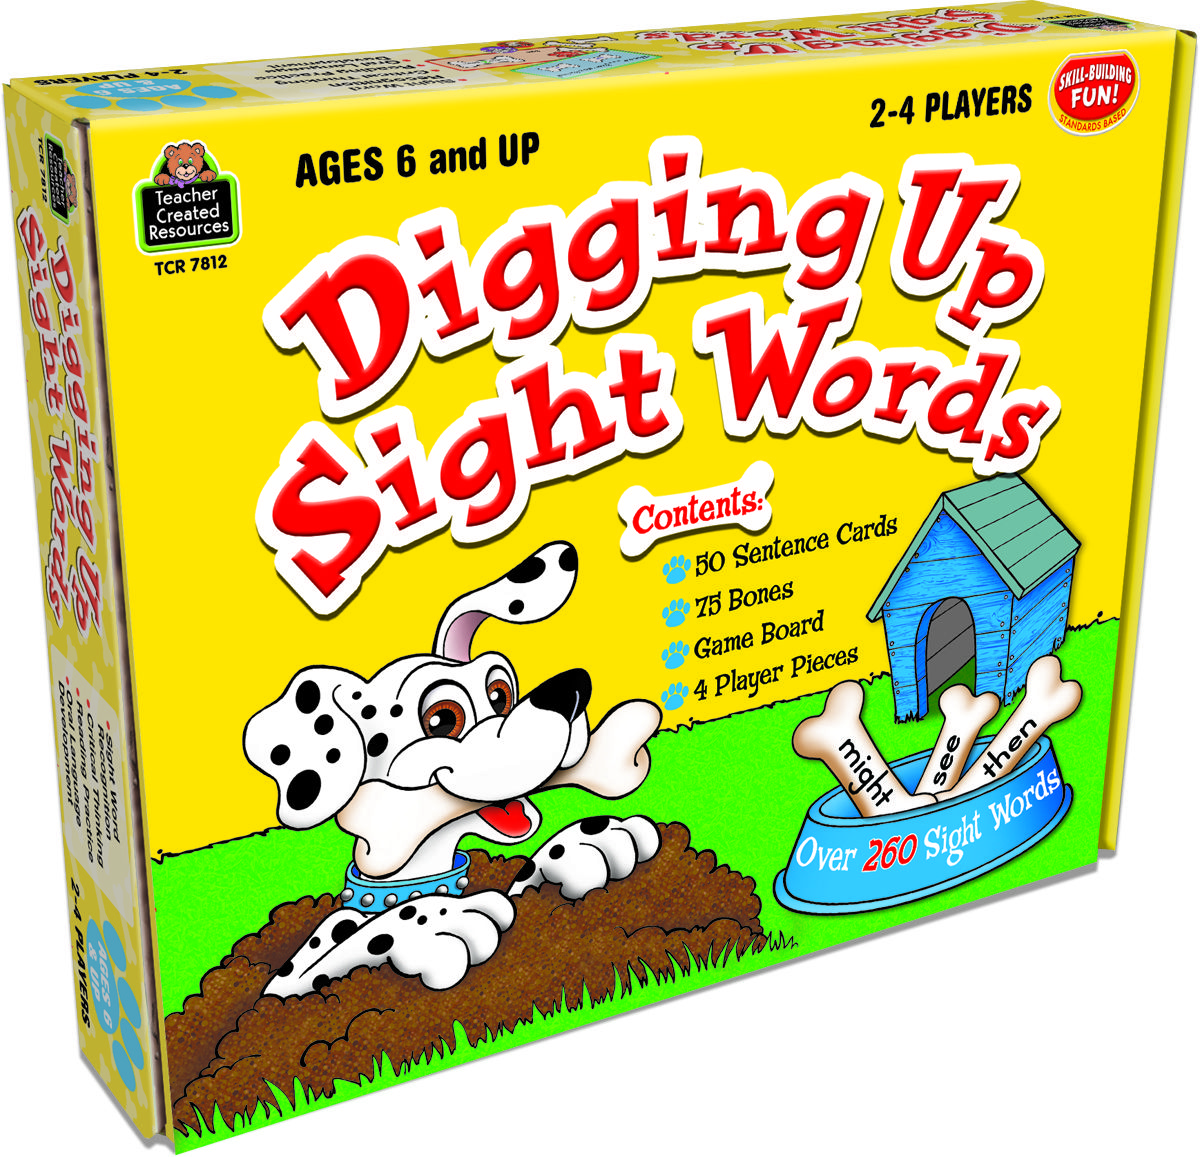 TCR's Digging Up Sight Words game for grades 1 and 2 helps children learn more than 260 sight words. Each player draws a sentence card, reads it aloud, and then chooses a sight word to complete the sentence. With a correct answer, the player collects the number of bones indicated on the card and moves ahead. The most bones wins! teachercreated.com